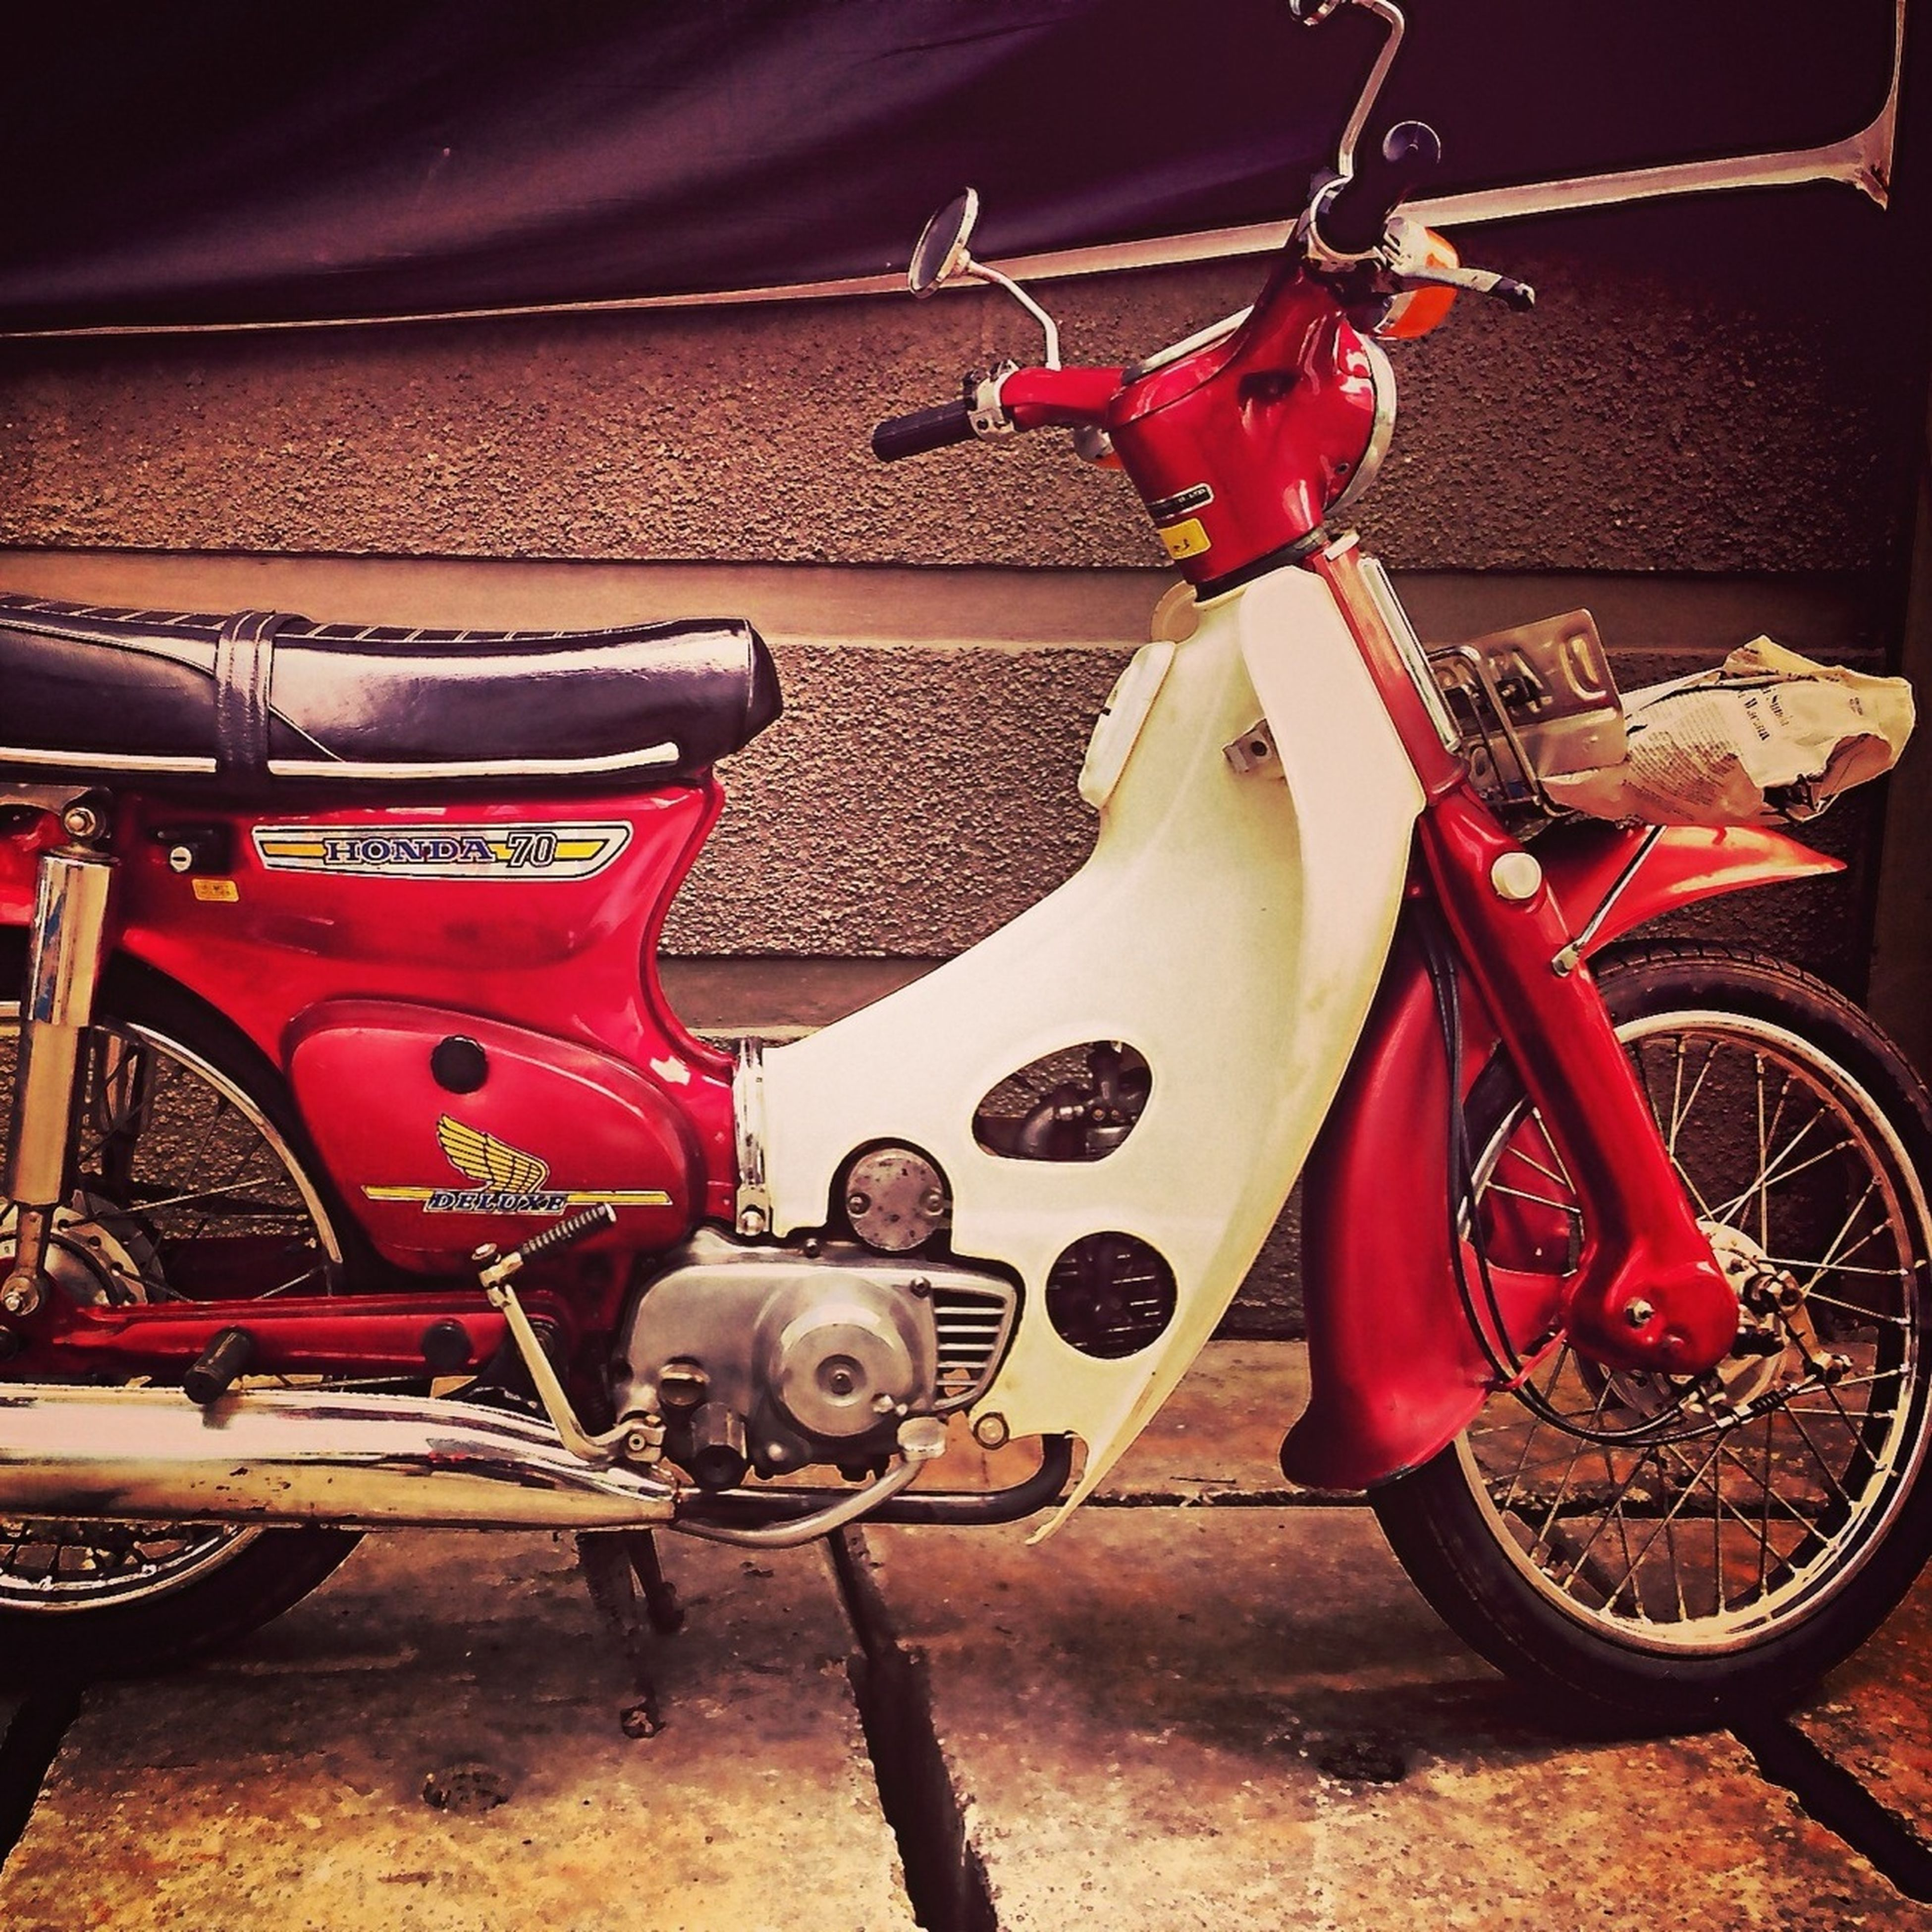 bicycle, transportation, land vehicle, mode of transport, stationary, parking, red, wheel, parked, street, motorcycle, outdoors, day, no people, metal, high angle view, sunlight, travel, car, sidewalk